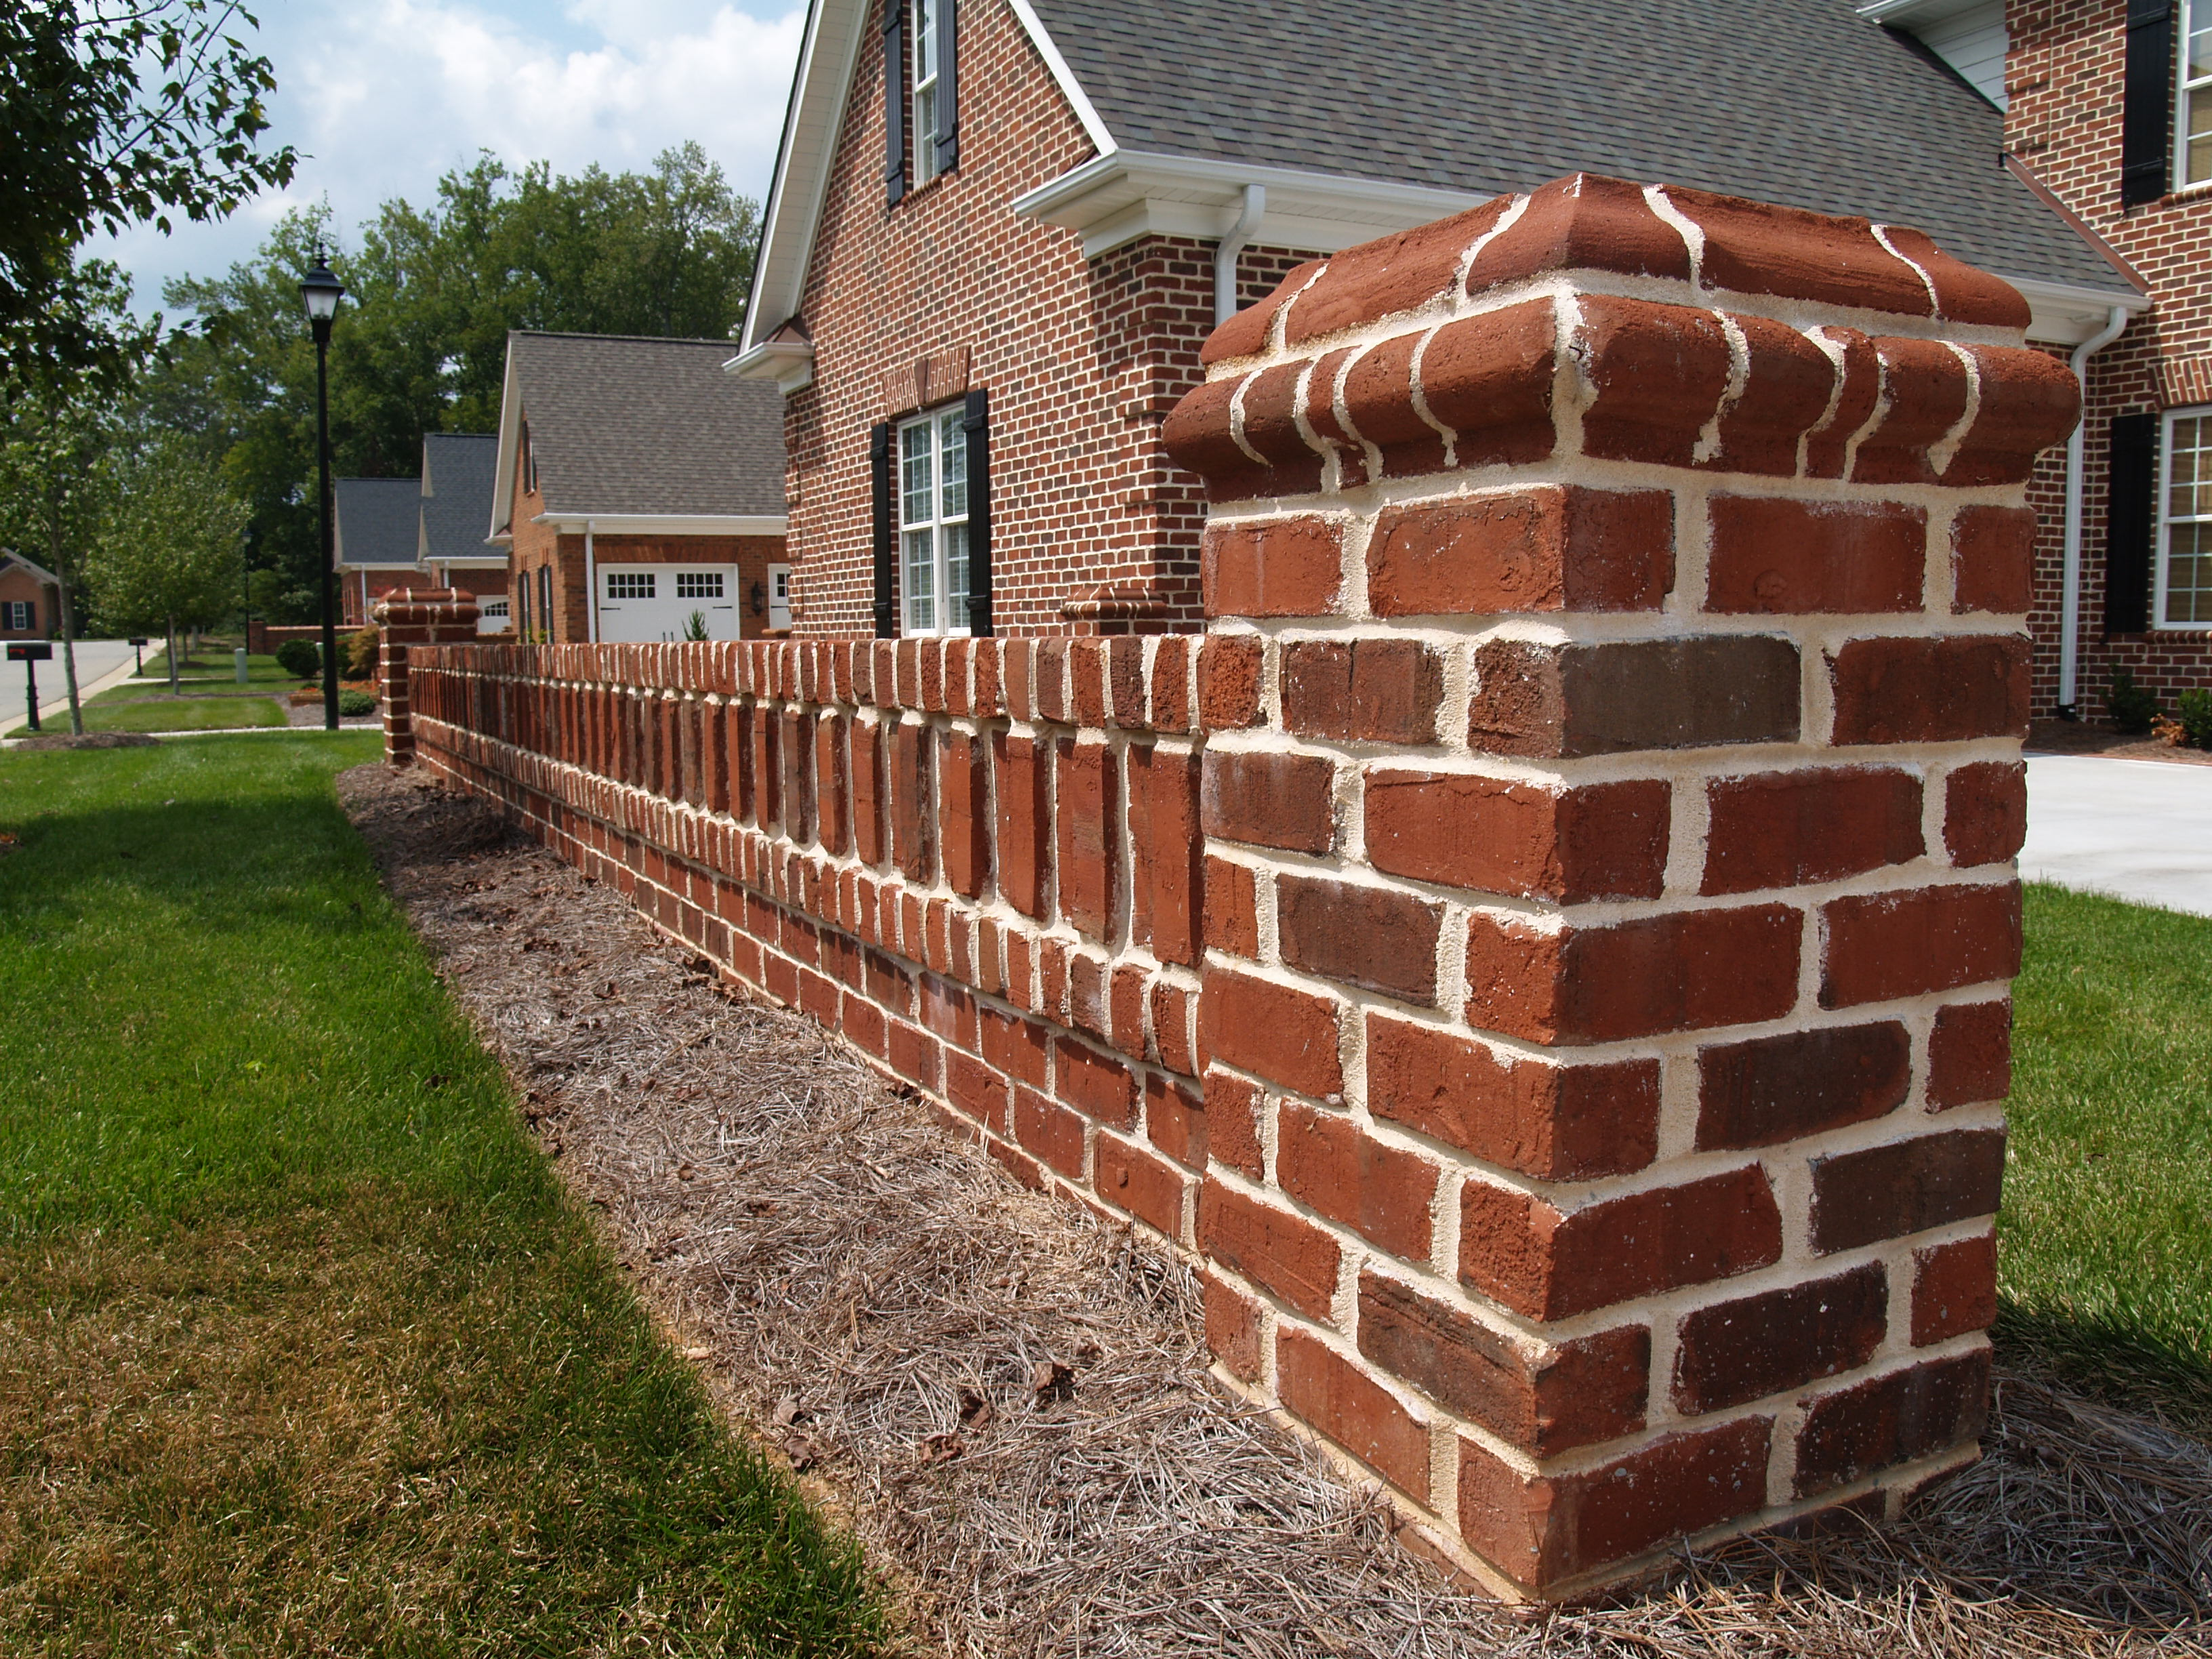 Modern Retaining Wall Design Options And Shapes - Pine Hall Brick, Inc.